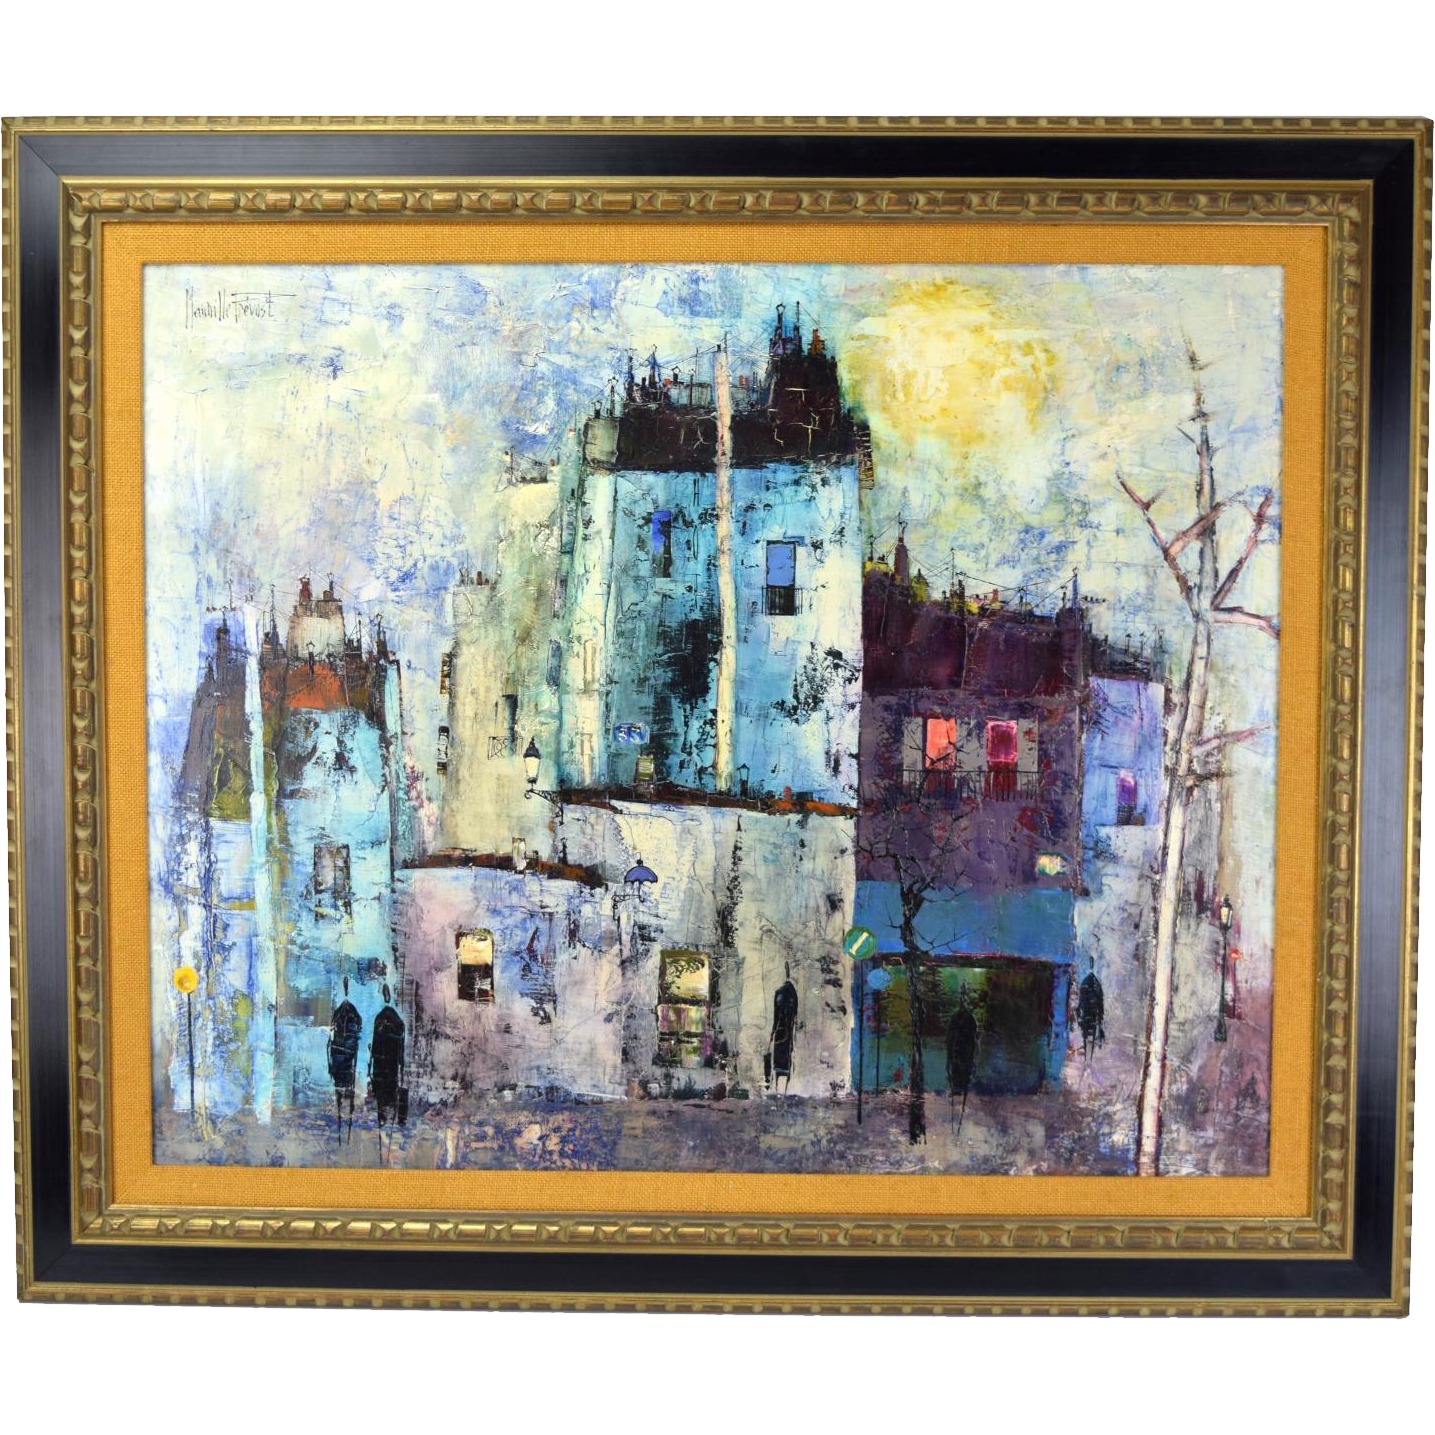 Vintage French Mid Century Oil Painting Abstract Street Scene Maurille Prevost Oil Painting Abstract Painting Oil Painting